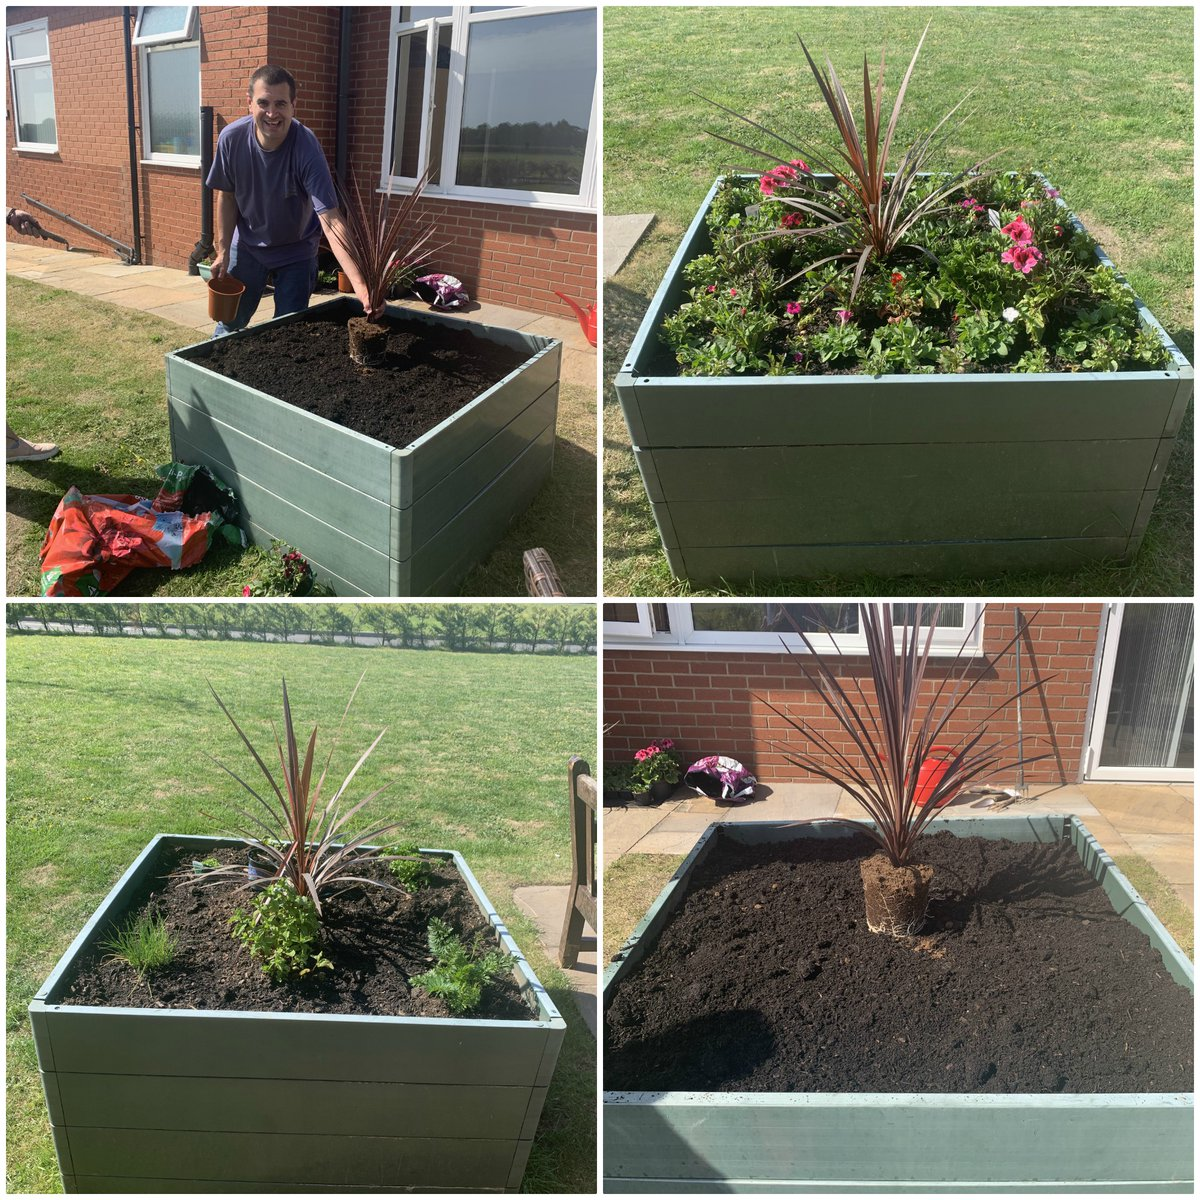 Our Lancashire Services have been busy keeping themselves planting some plants and herbs to enjoy. Good job guys, we think it looks great!🌻🌷 #Lancashire #Gardening #Plants #Herbs #SocialCare